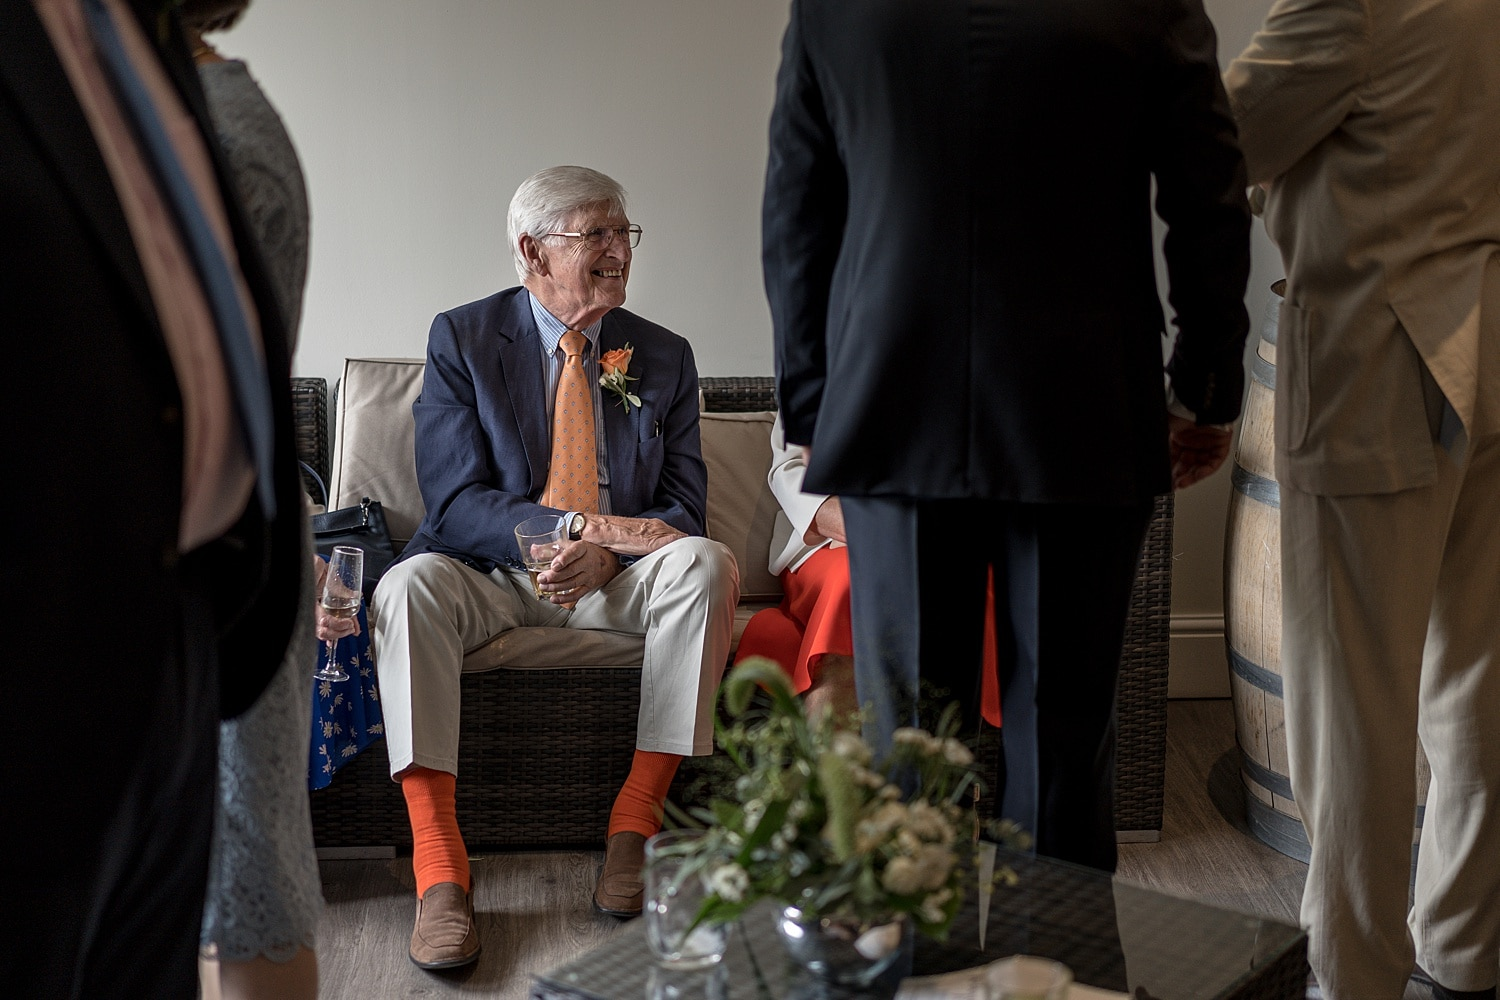 Wedding guest sitting down with orange socks